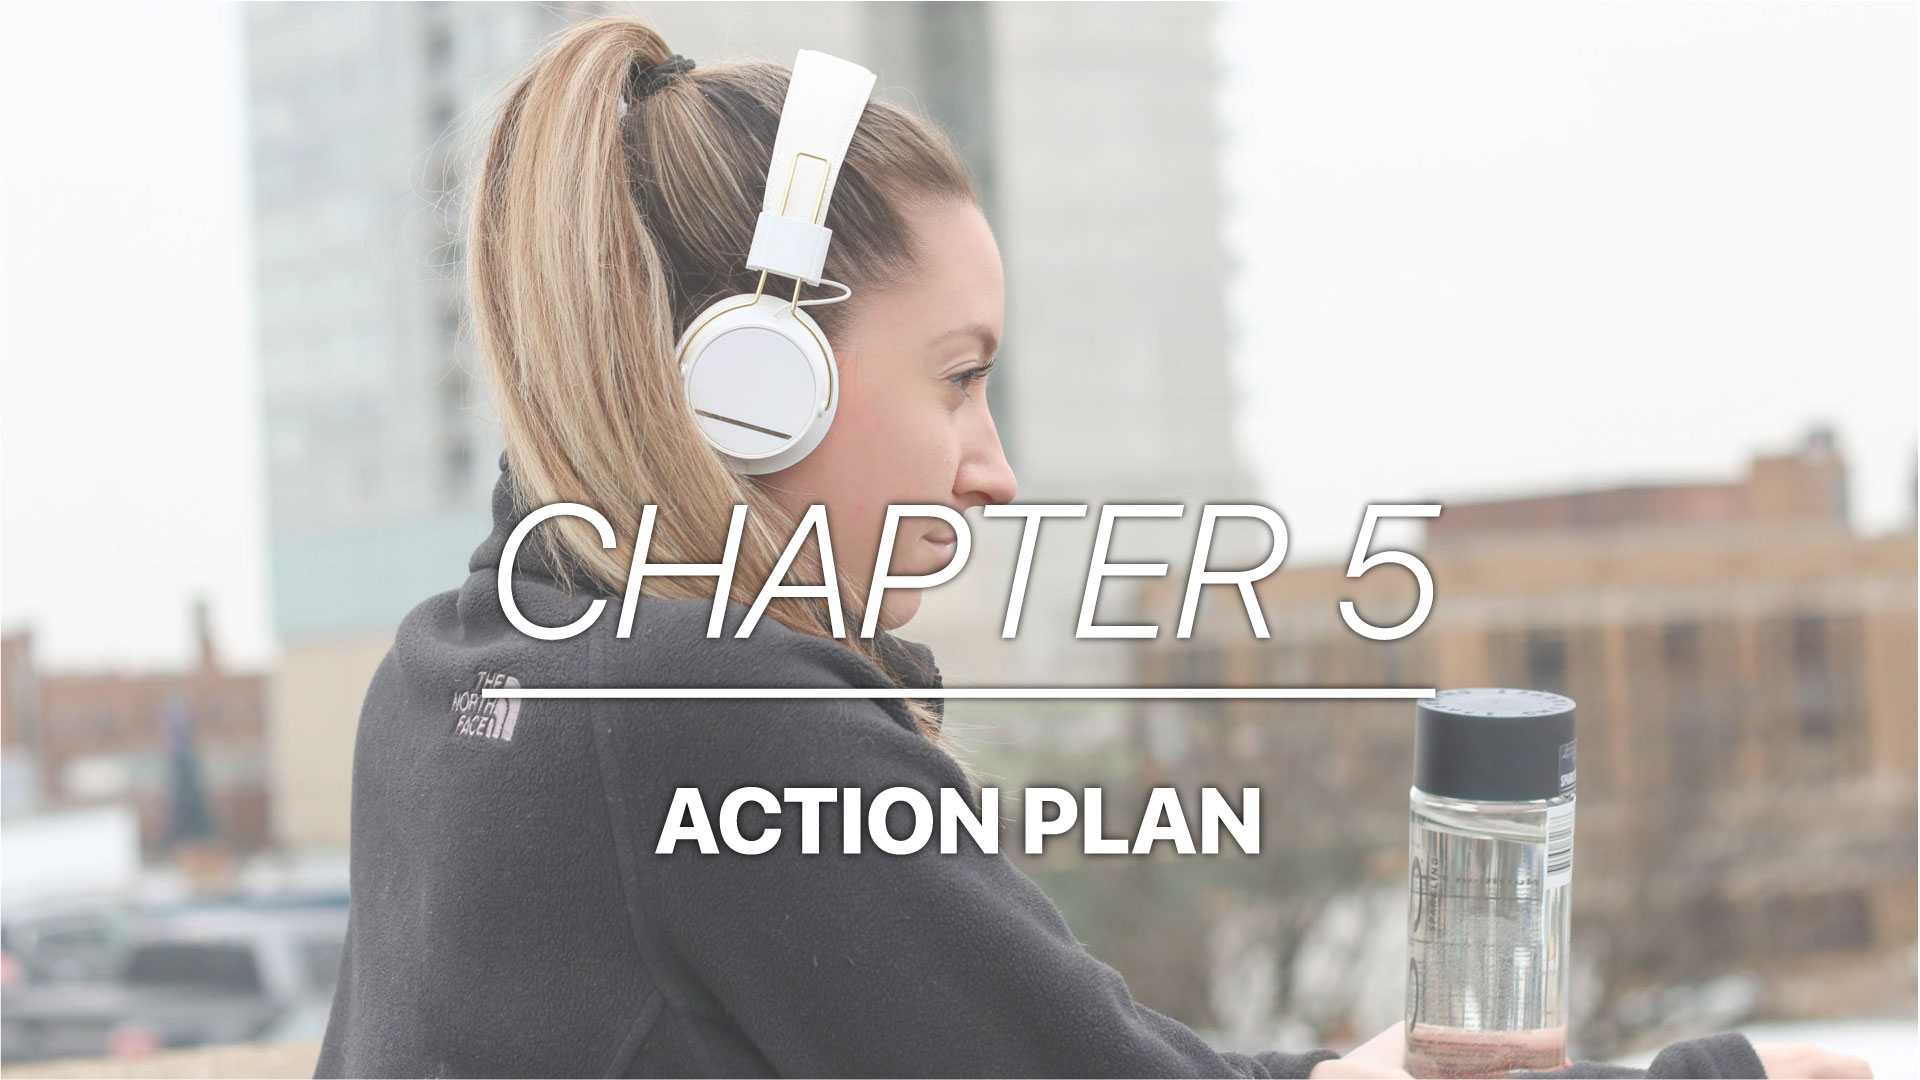 Chapter 5 Action Plan